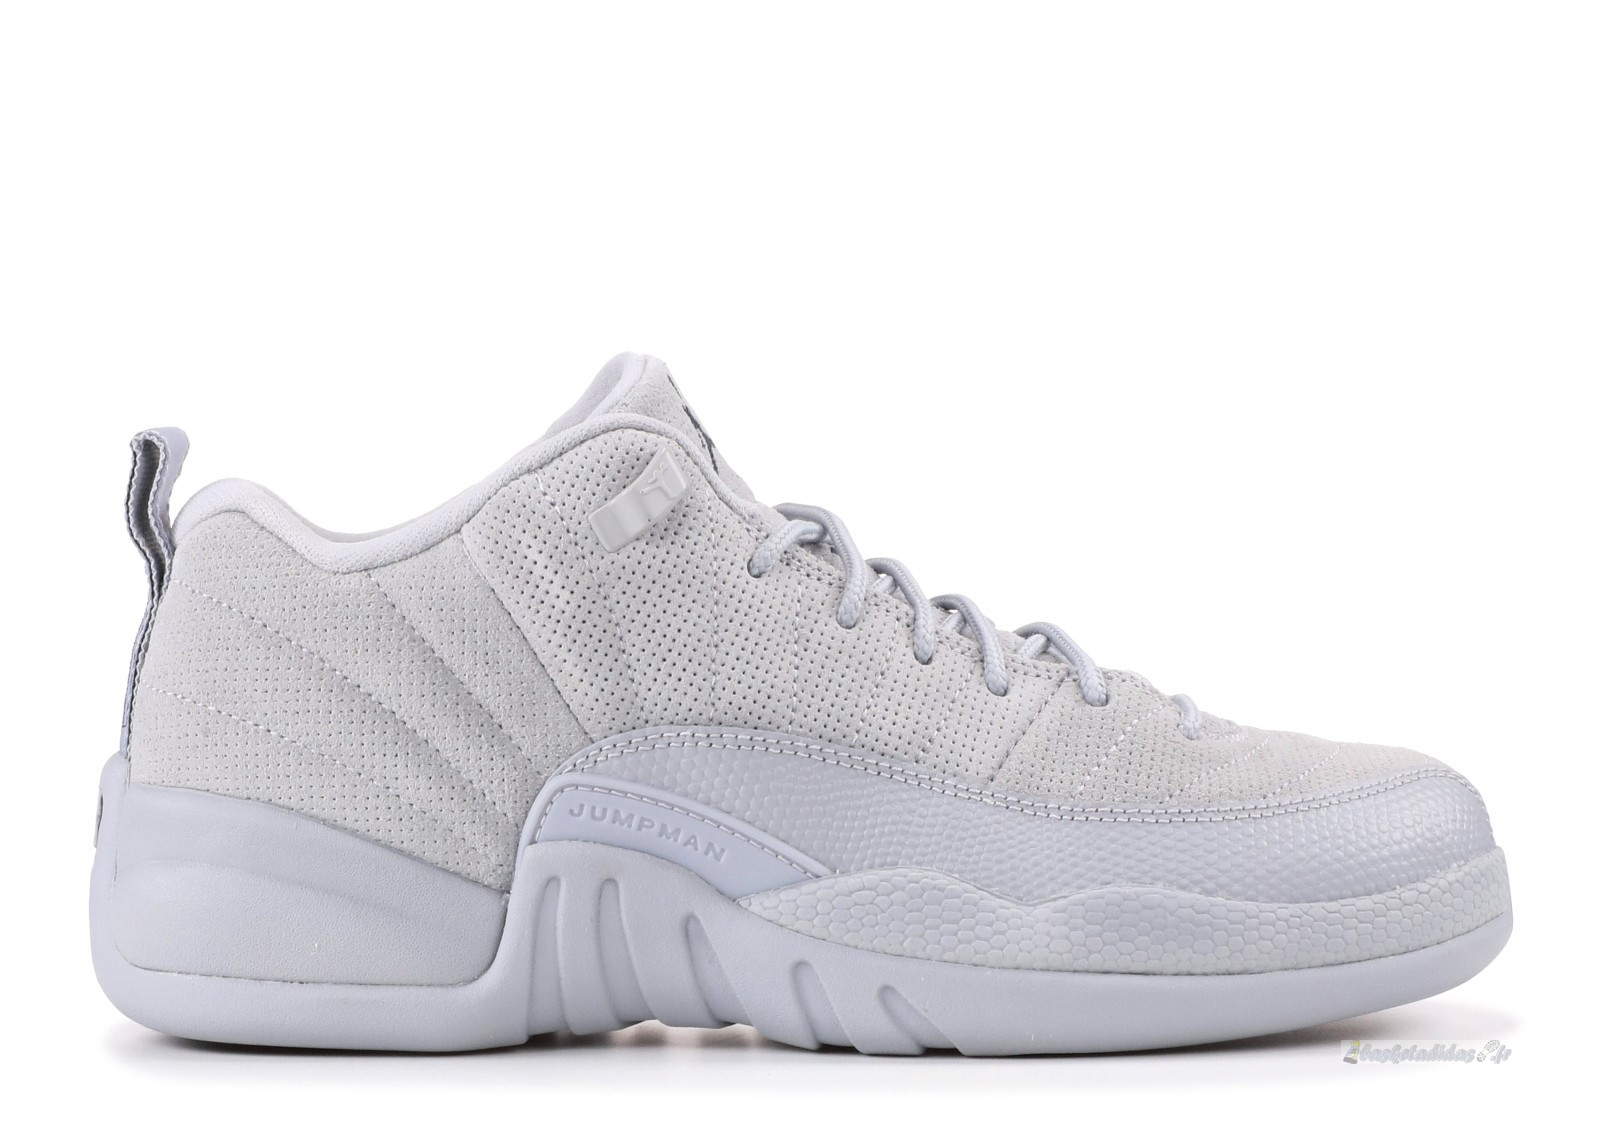 Chaussure de Basket Air Jordan 12 Retro Low (Gs) Gris (308305-002)